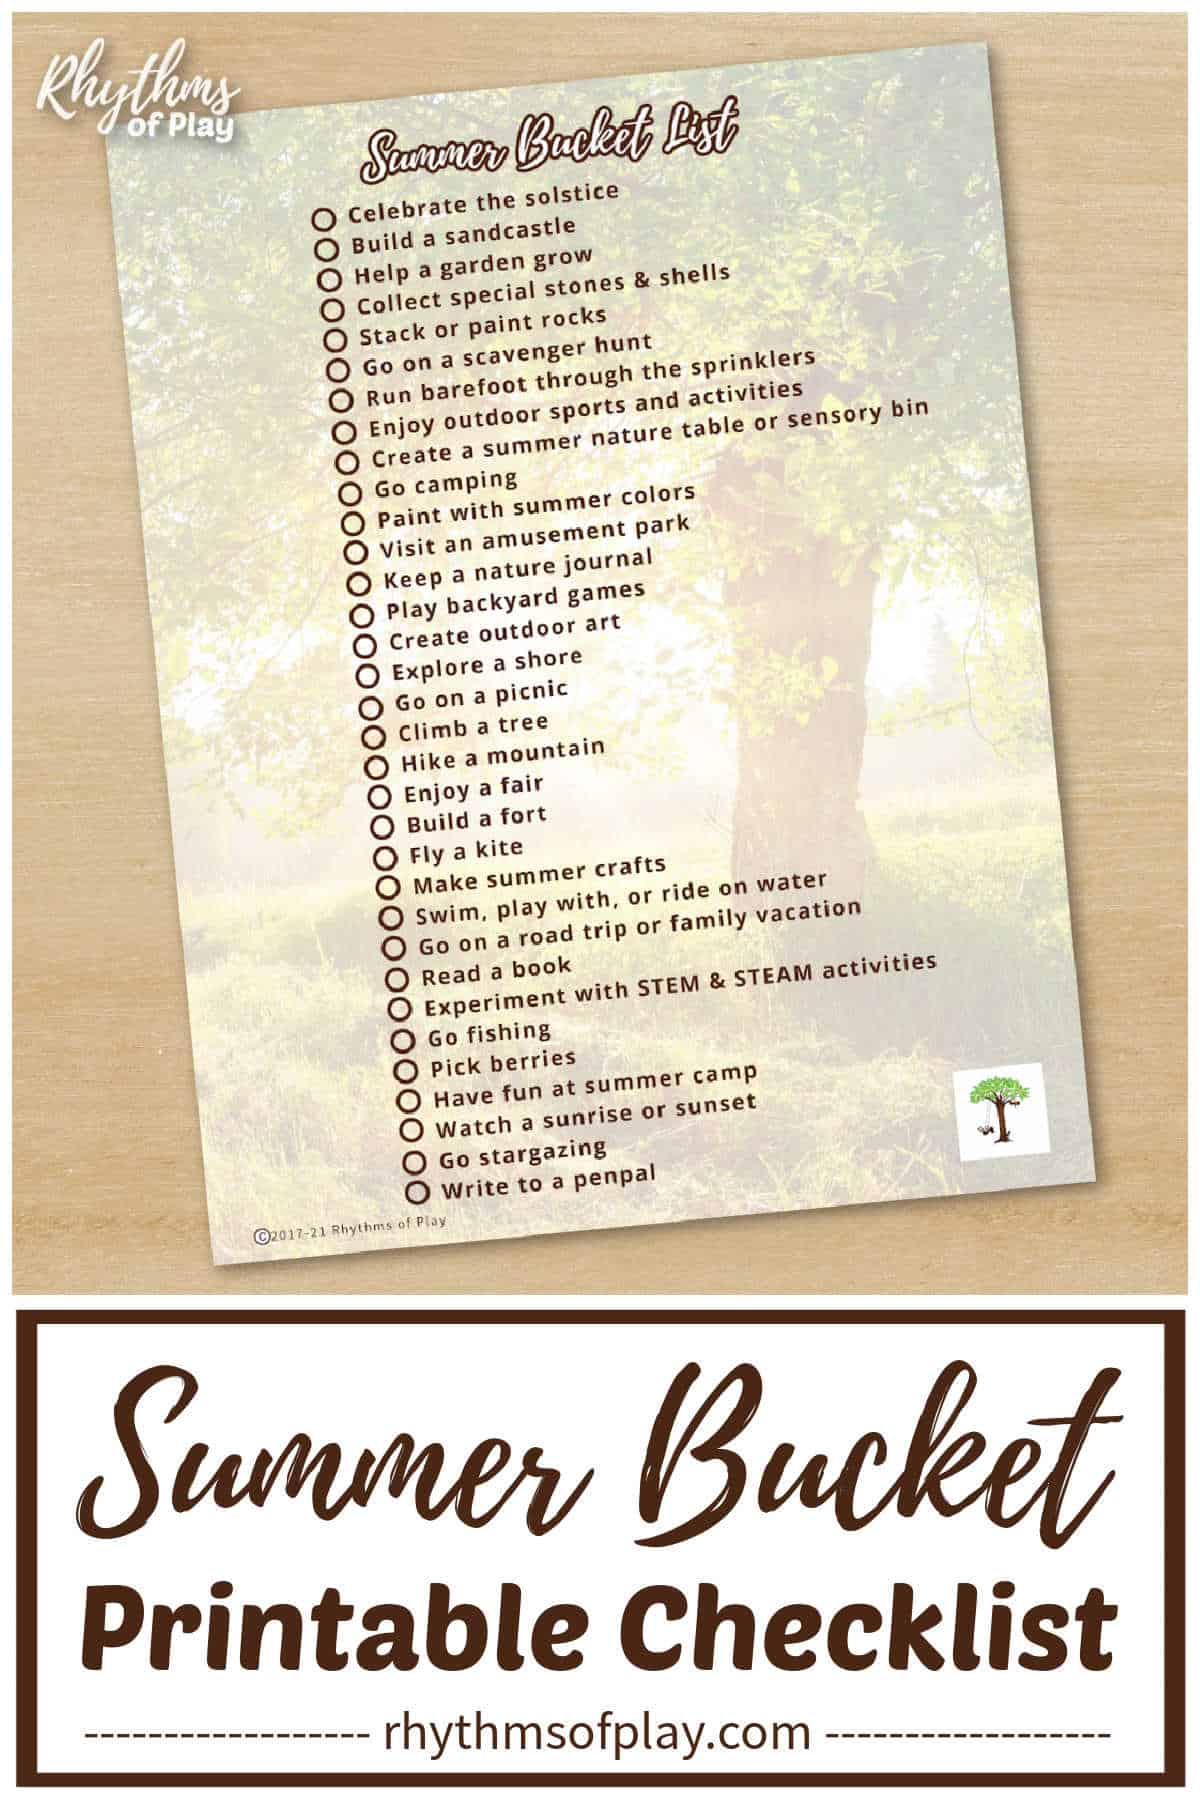 image of summer bucket list printable checklist for kids (and adults, too)!